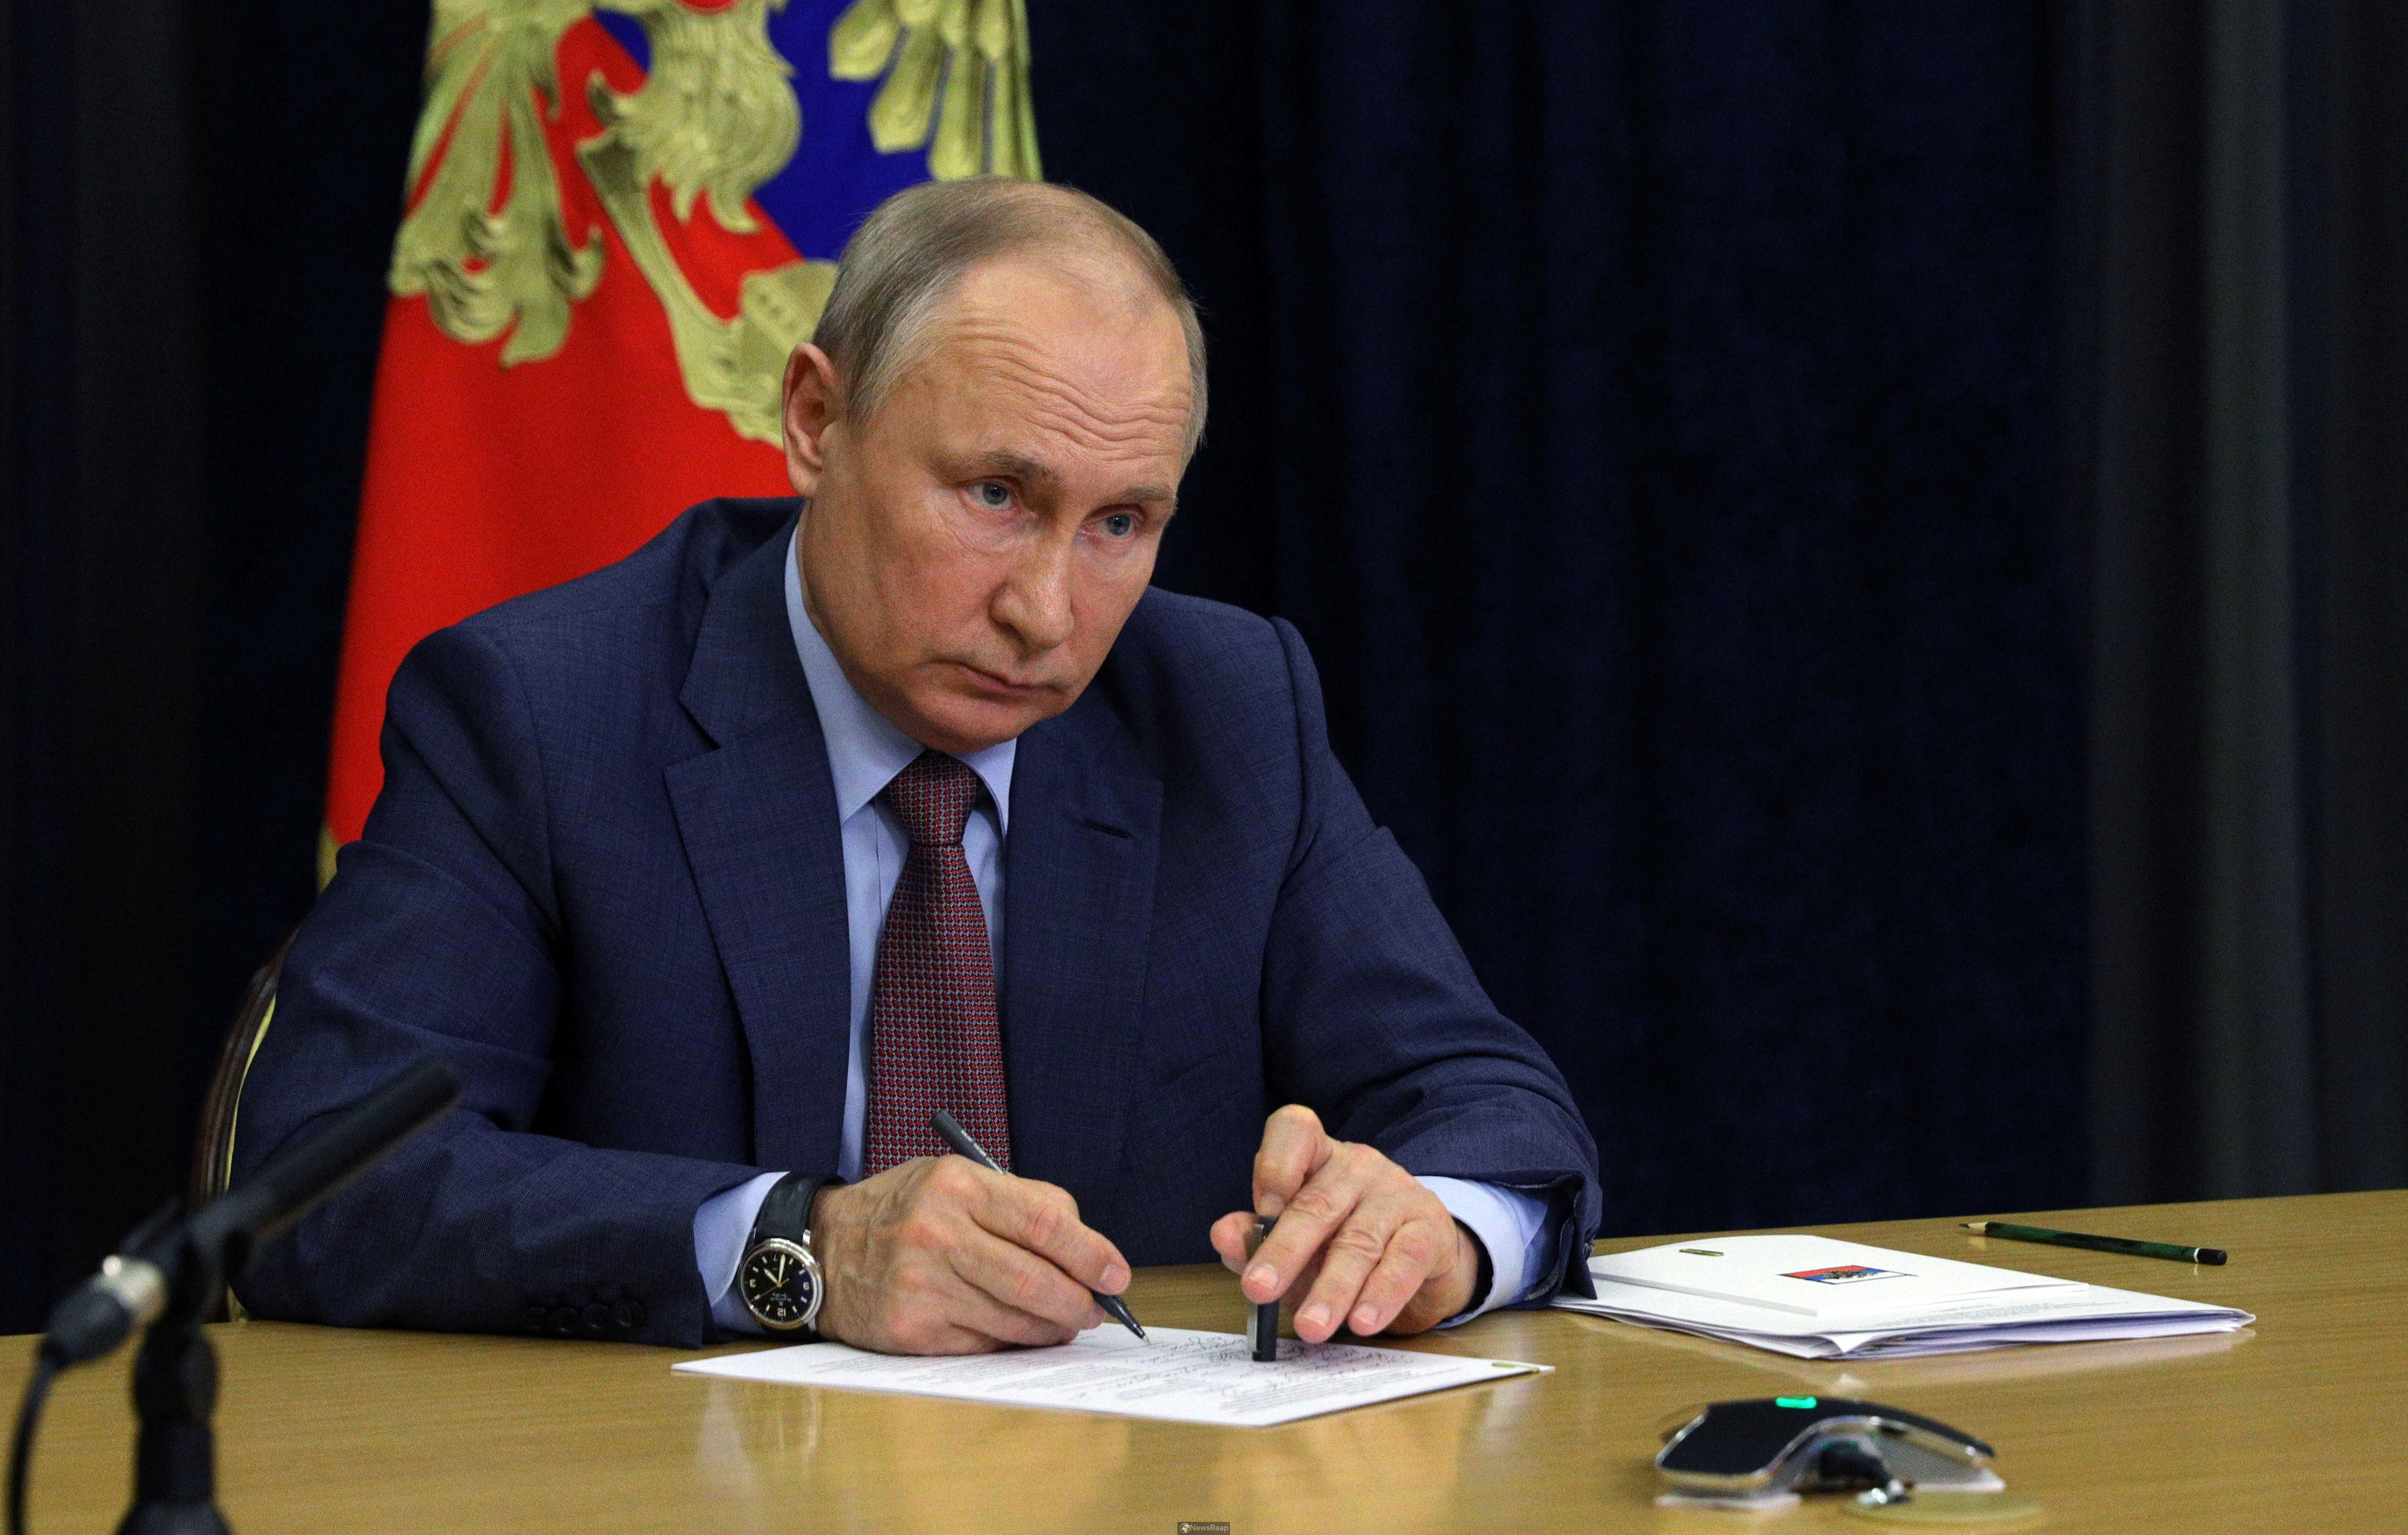 Putin inks law to ban extremists from elections amid Navalny crackdown